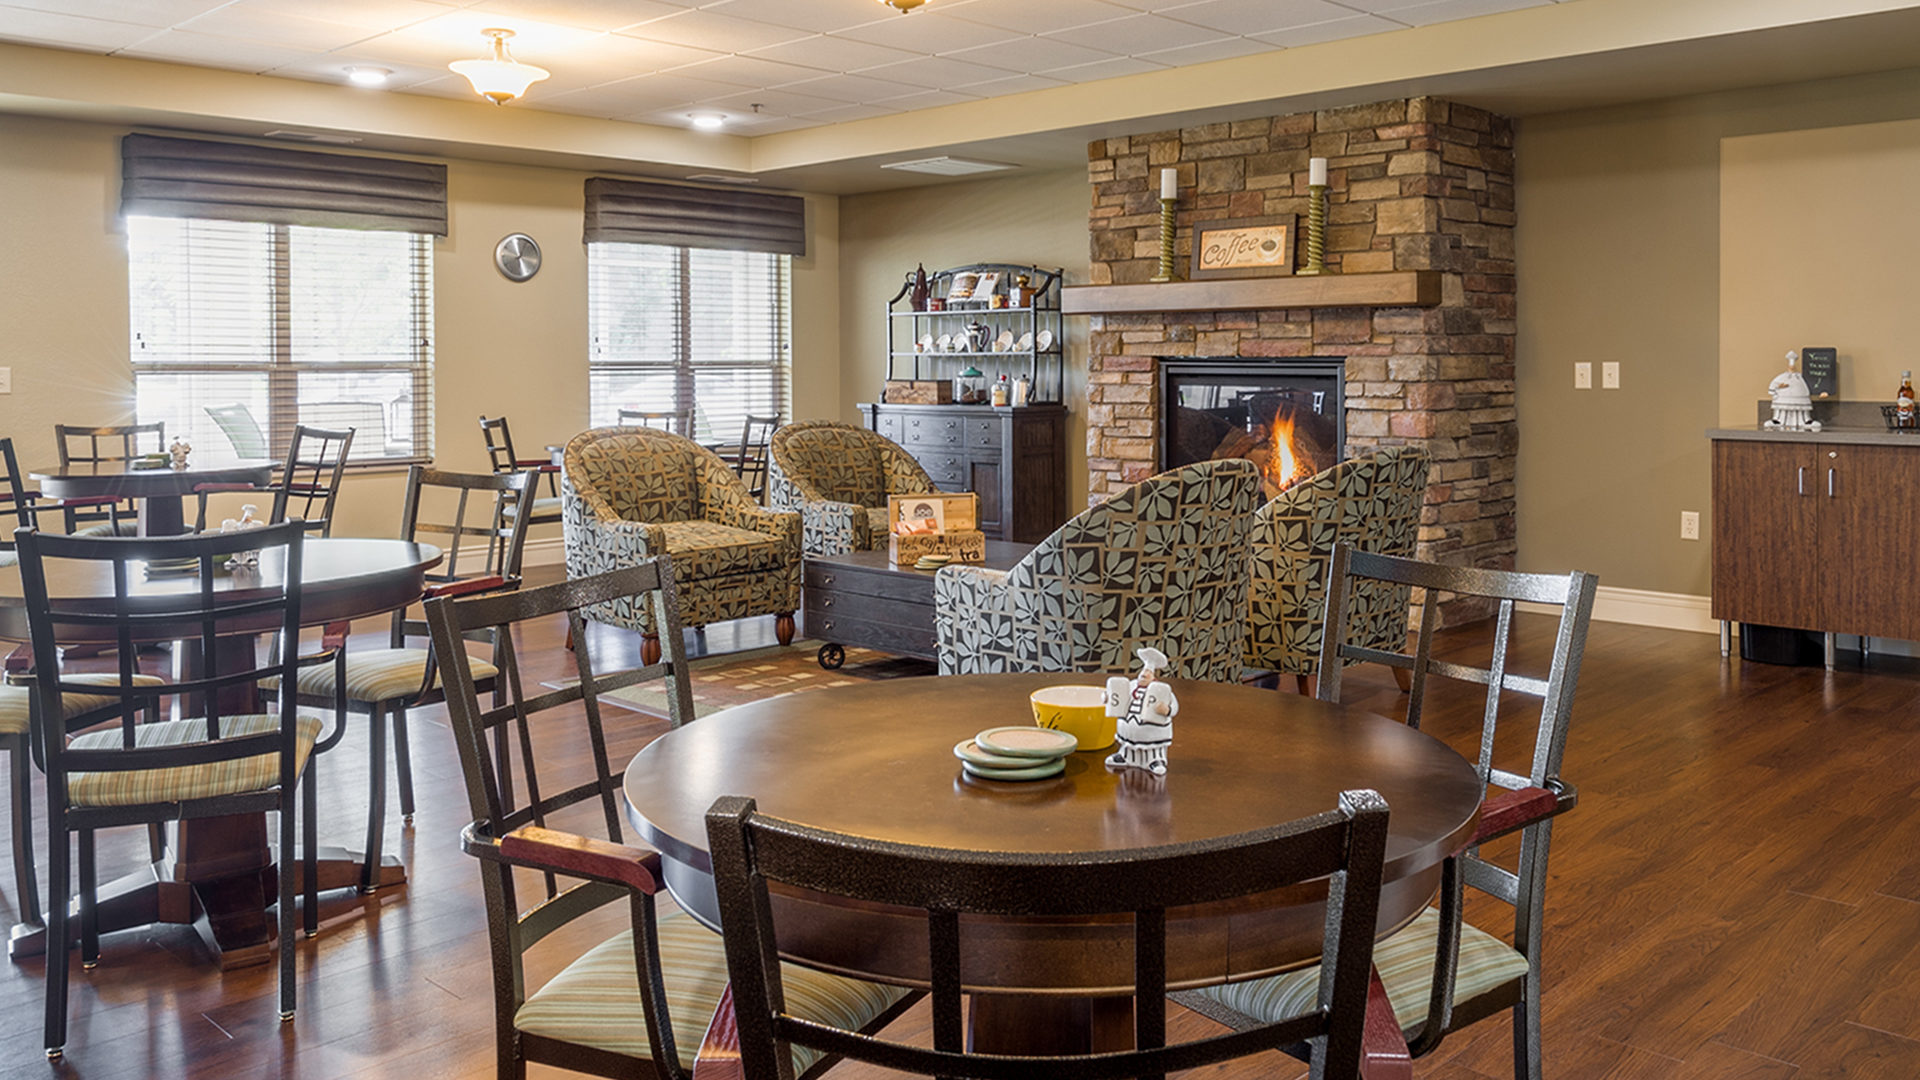 Deephaven Woods Senior Living Housing Interior View of Community Room Fireplace Seating Area